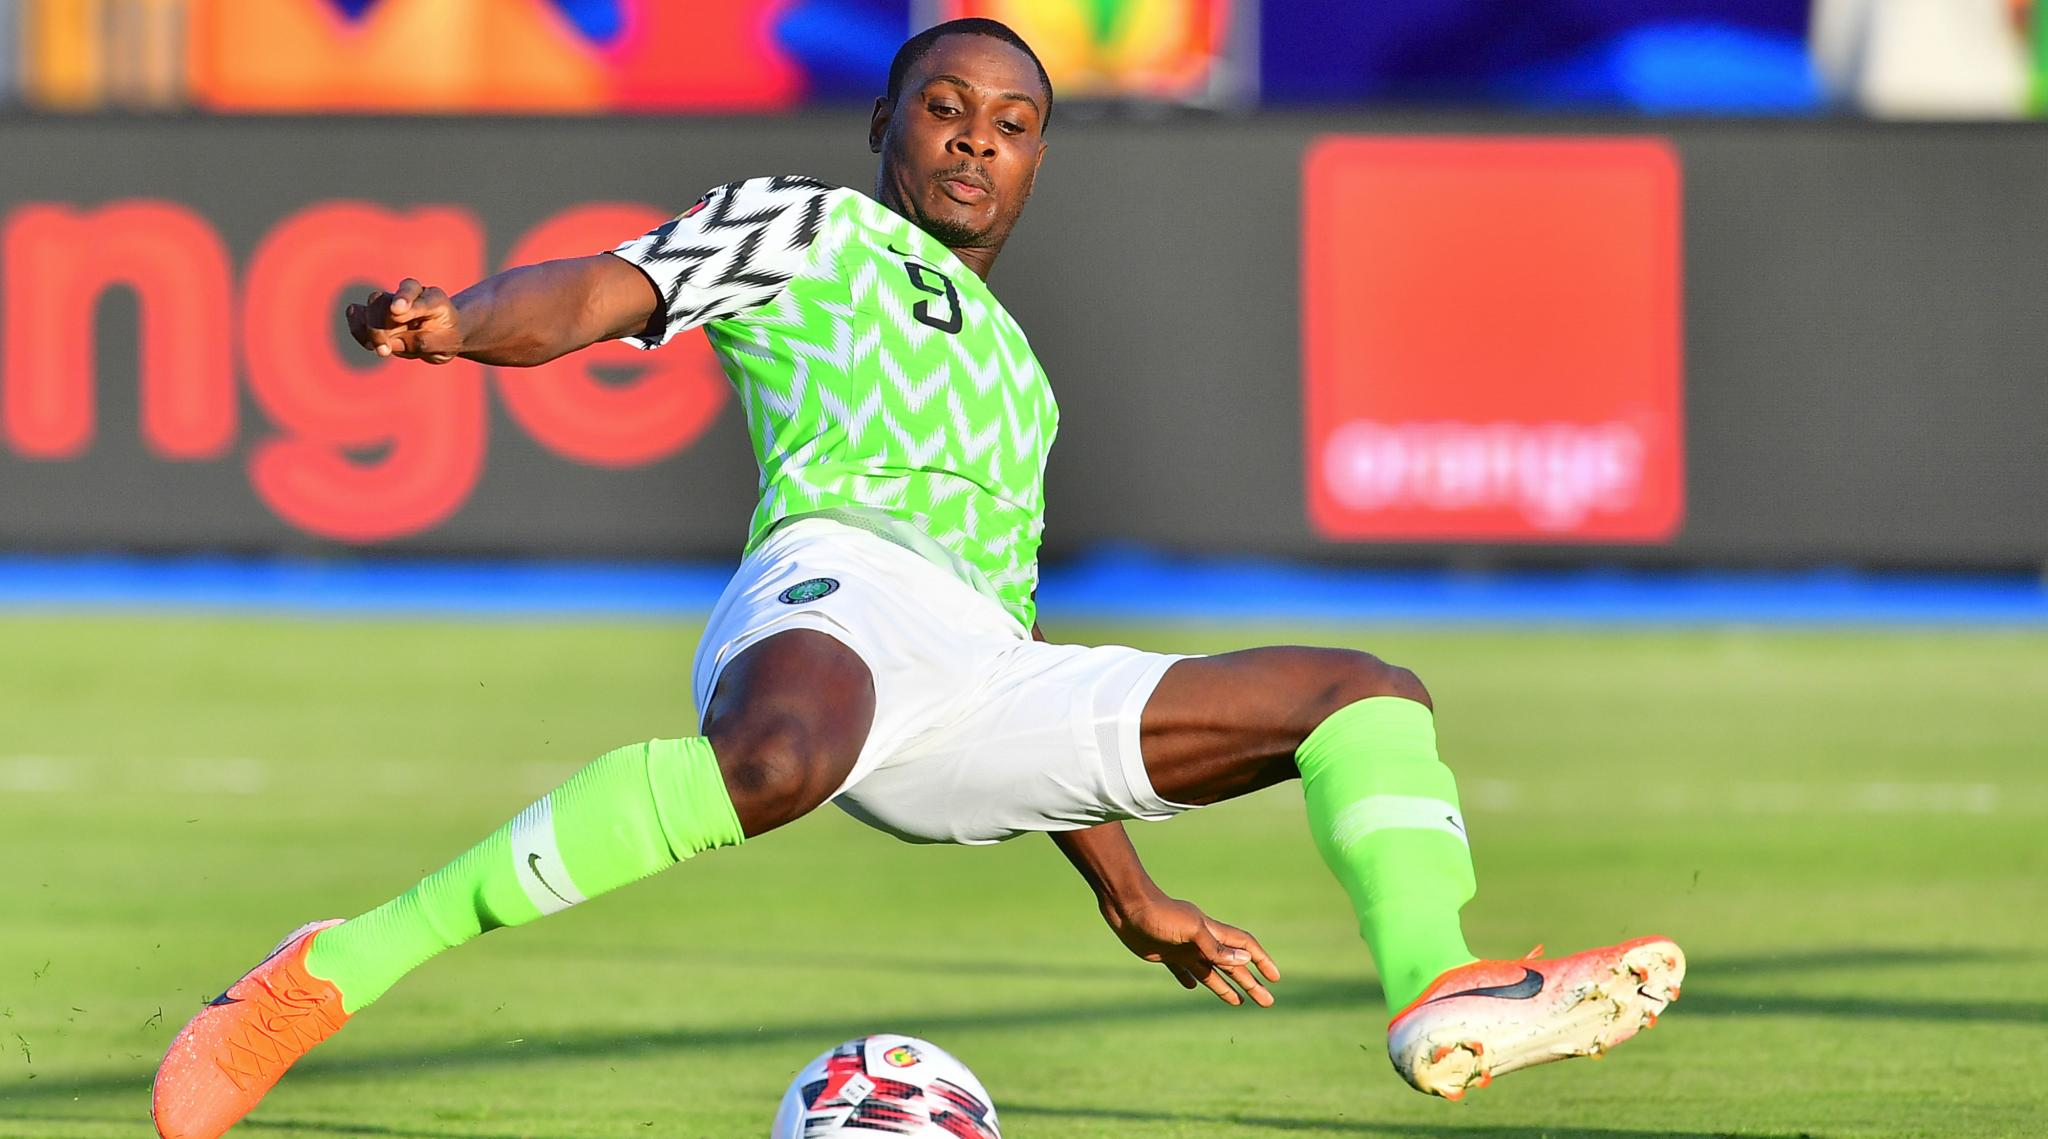 Coronavirus Outbreak: Manchester United Keep Odion Ighalo Away From Training Ground Due to COVID-19 Fear